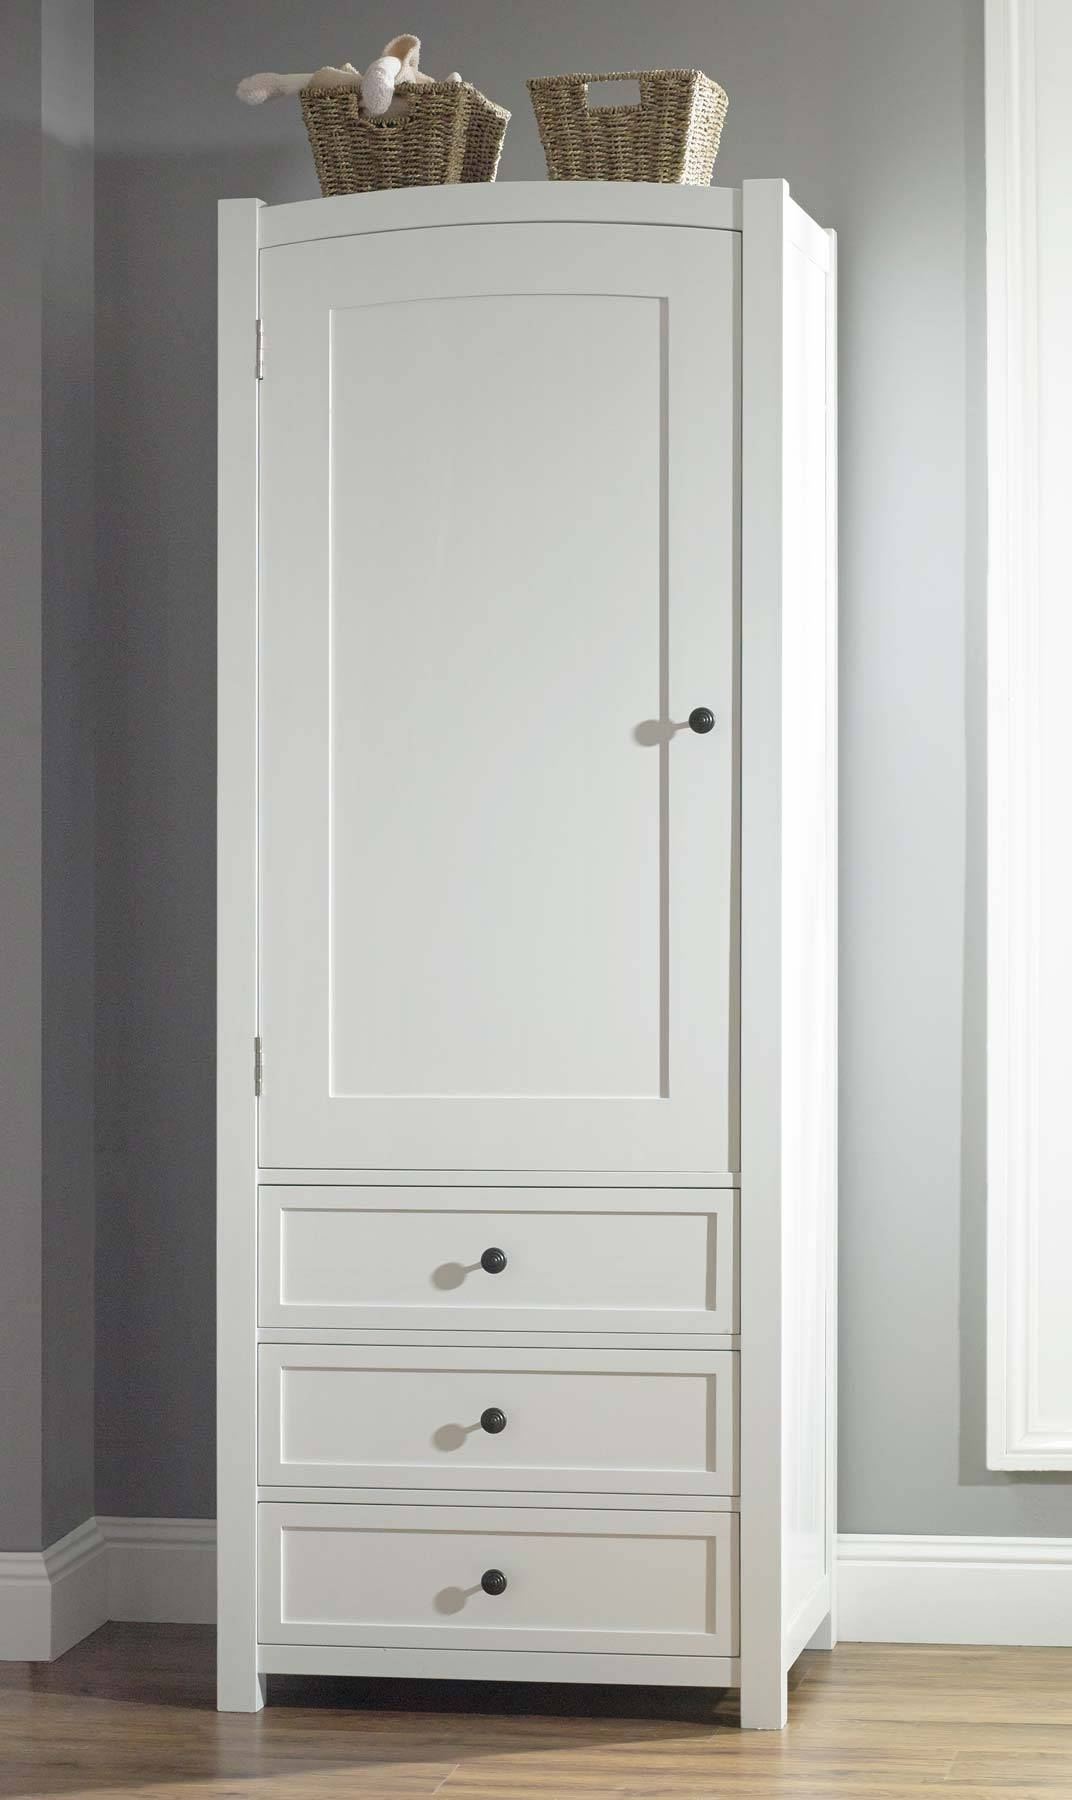 Wardrobe : 39 Formidable White Wooden Wardrobe With Drawers Photo intended for White Single Door Wardrobes (Image 12 of 15)